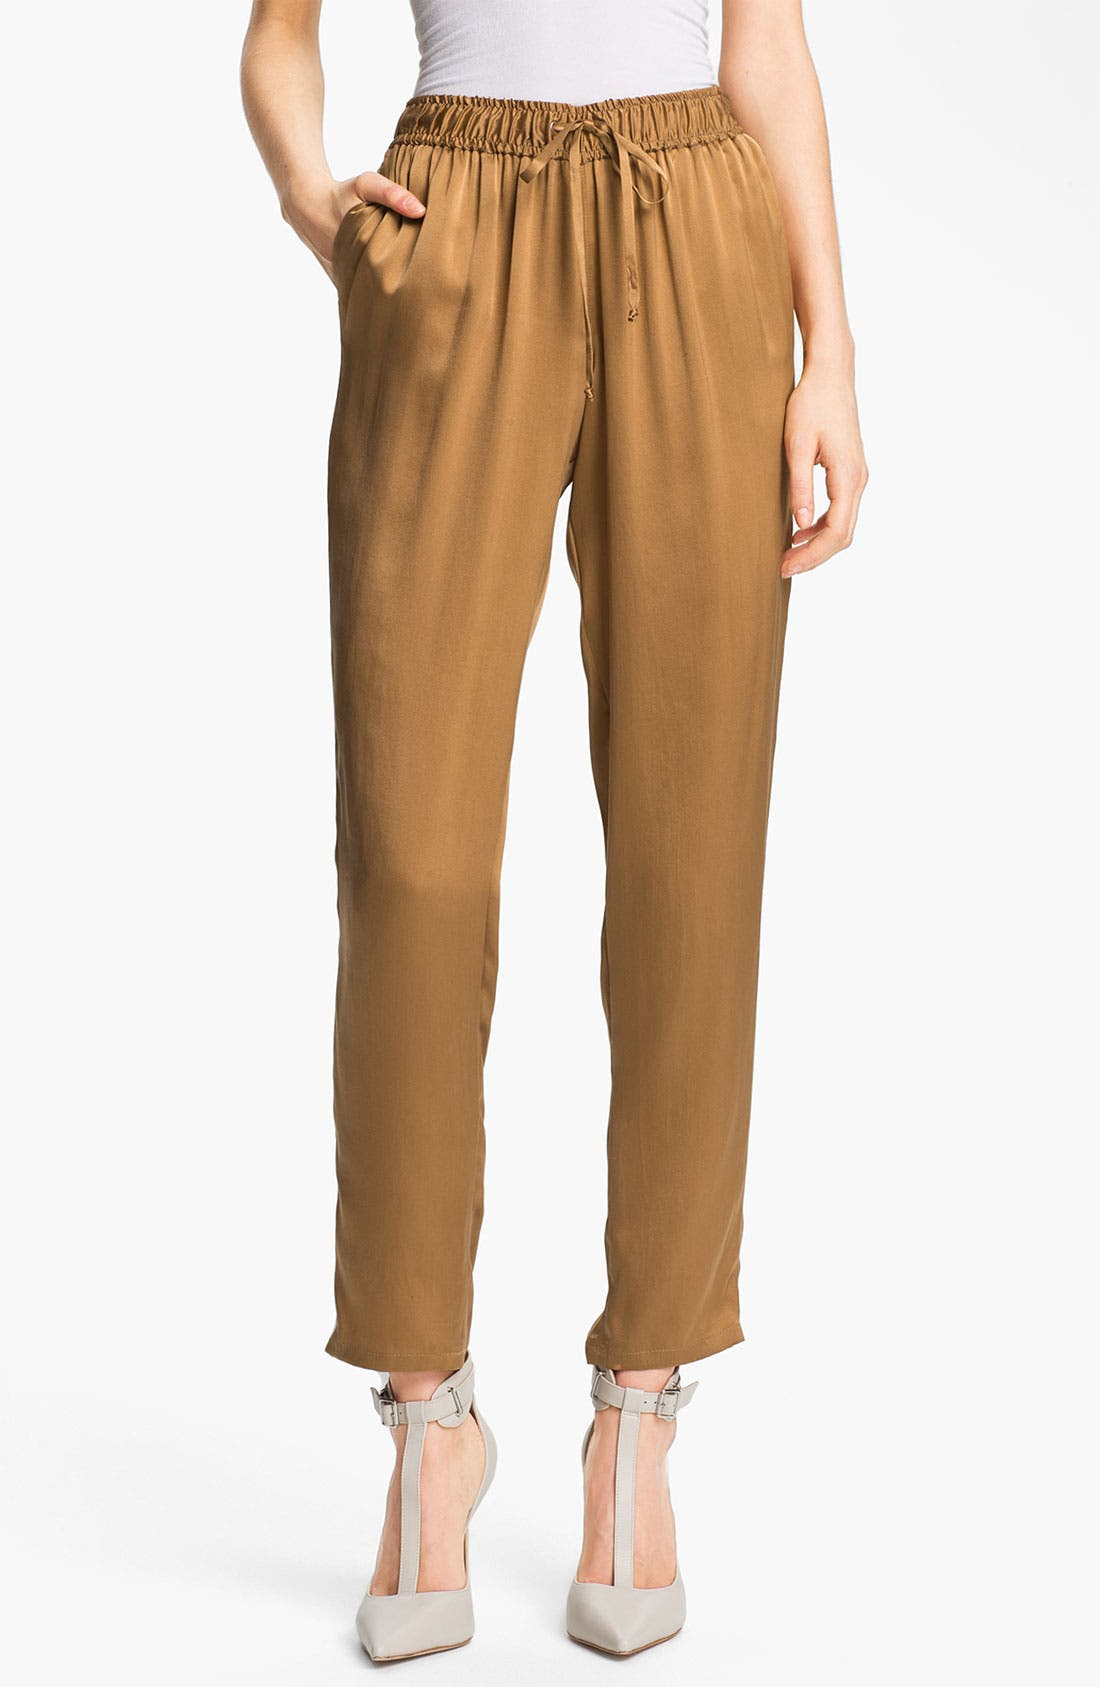 Alternate Image 1 Selected - Elizabeth and James 'Gessler' Drawstring Silk Pants